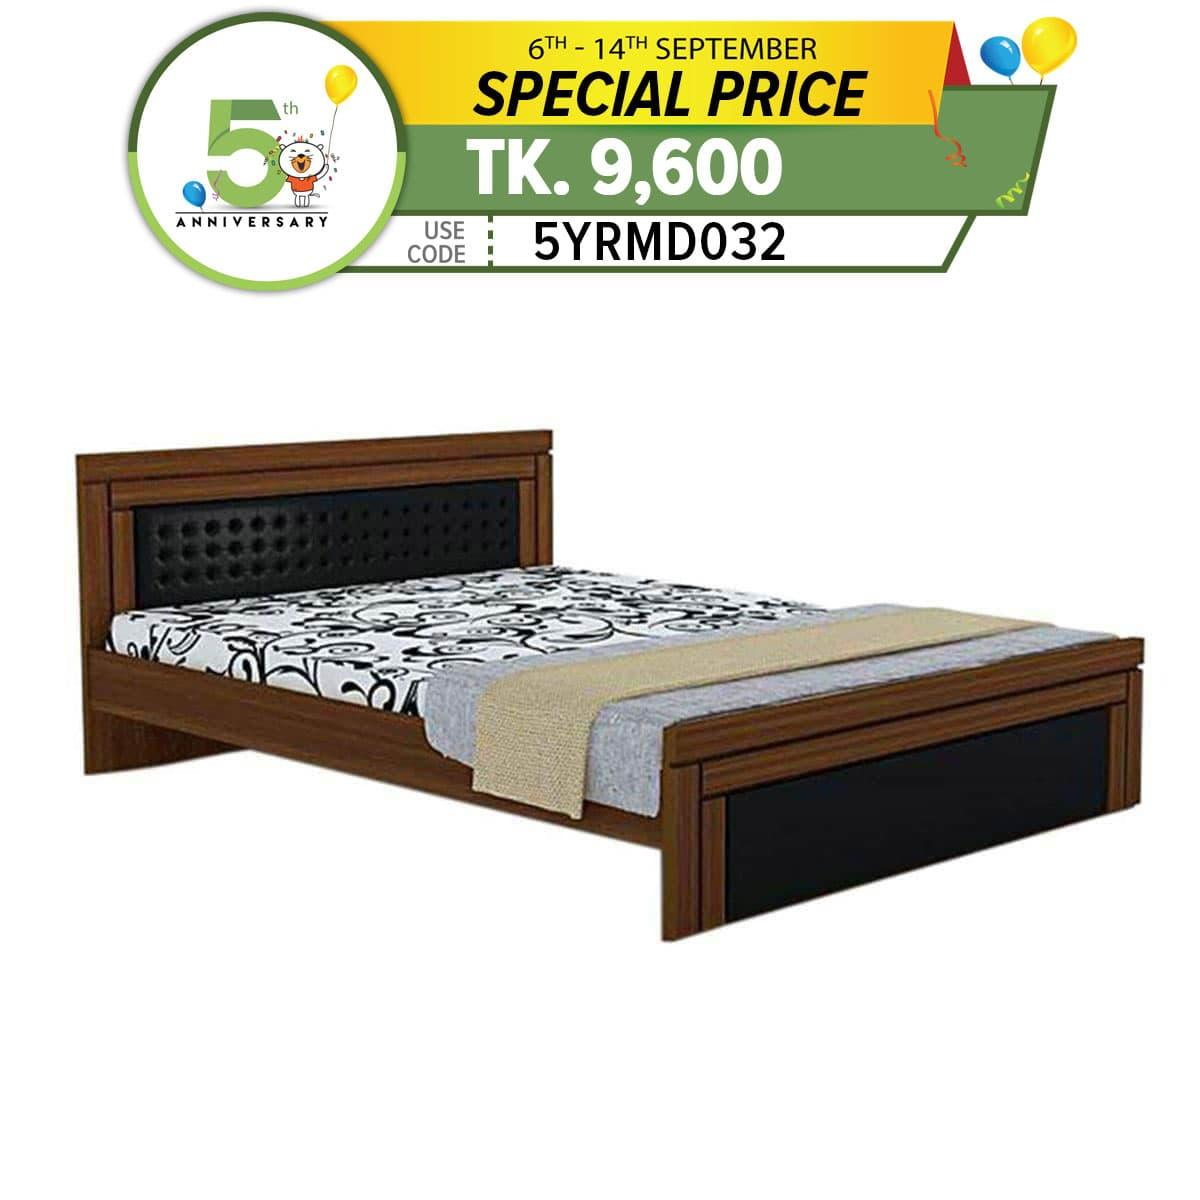 HBDH-104-4-10 Laminated Board Double Bed - Brown